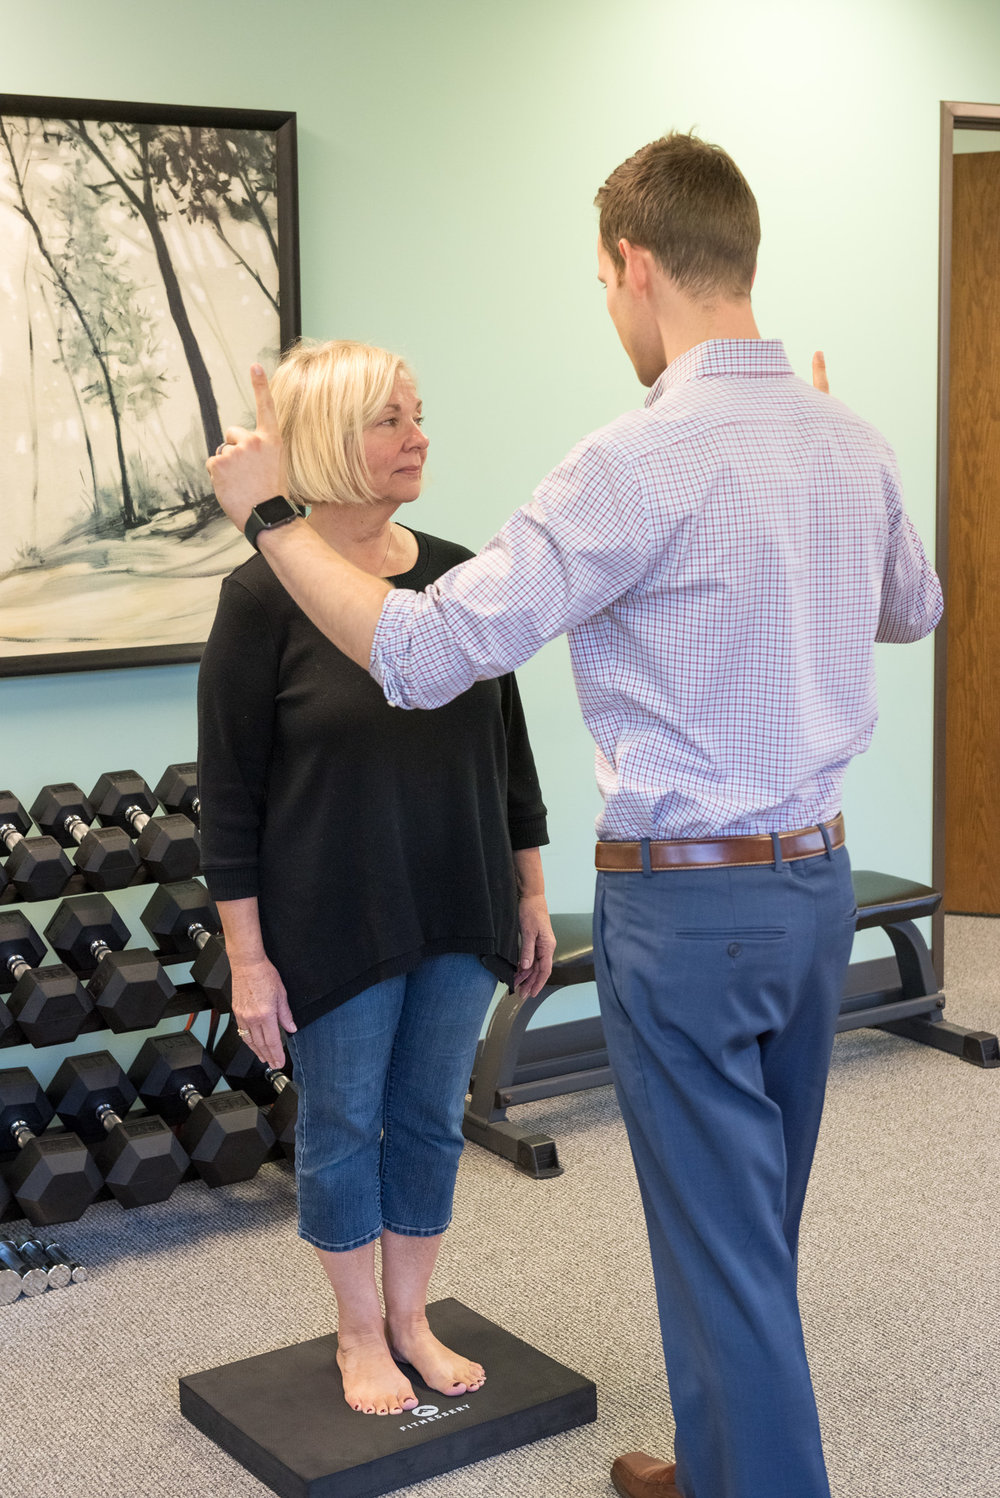 Whole body health physical therapy dizziness and balance